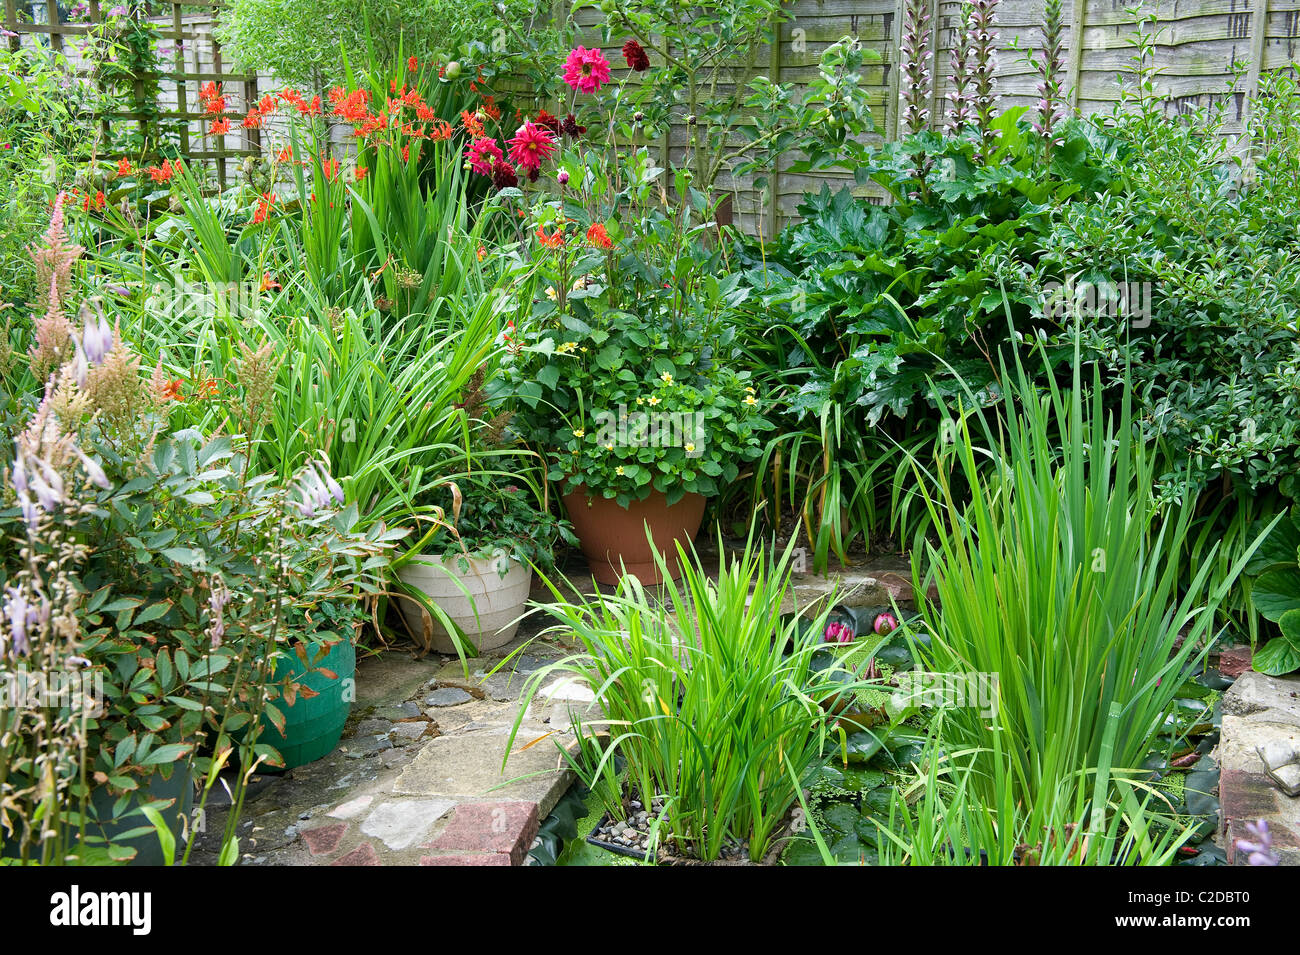 urban garden with pond and pot plants - Stock Image